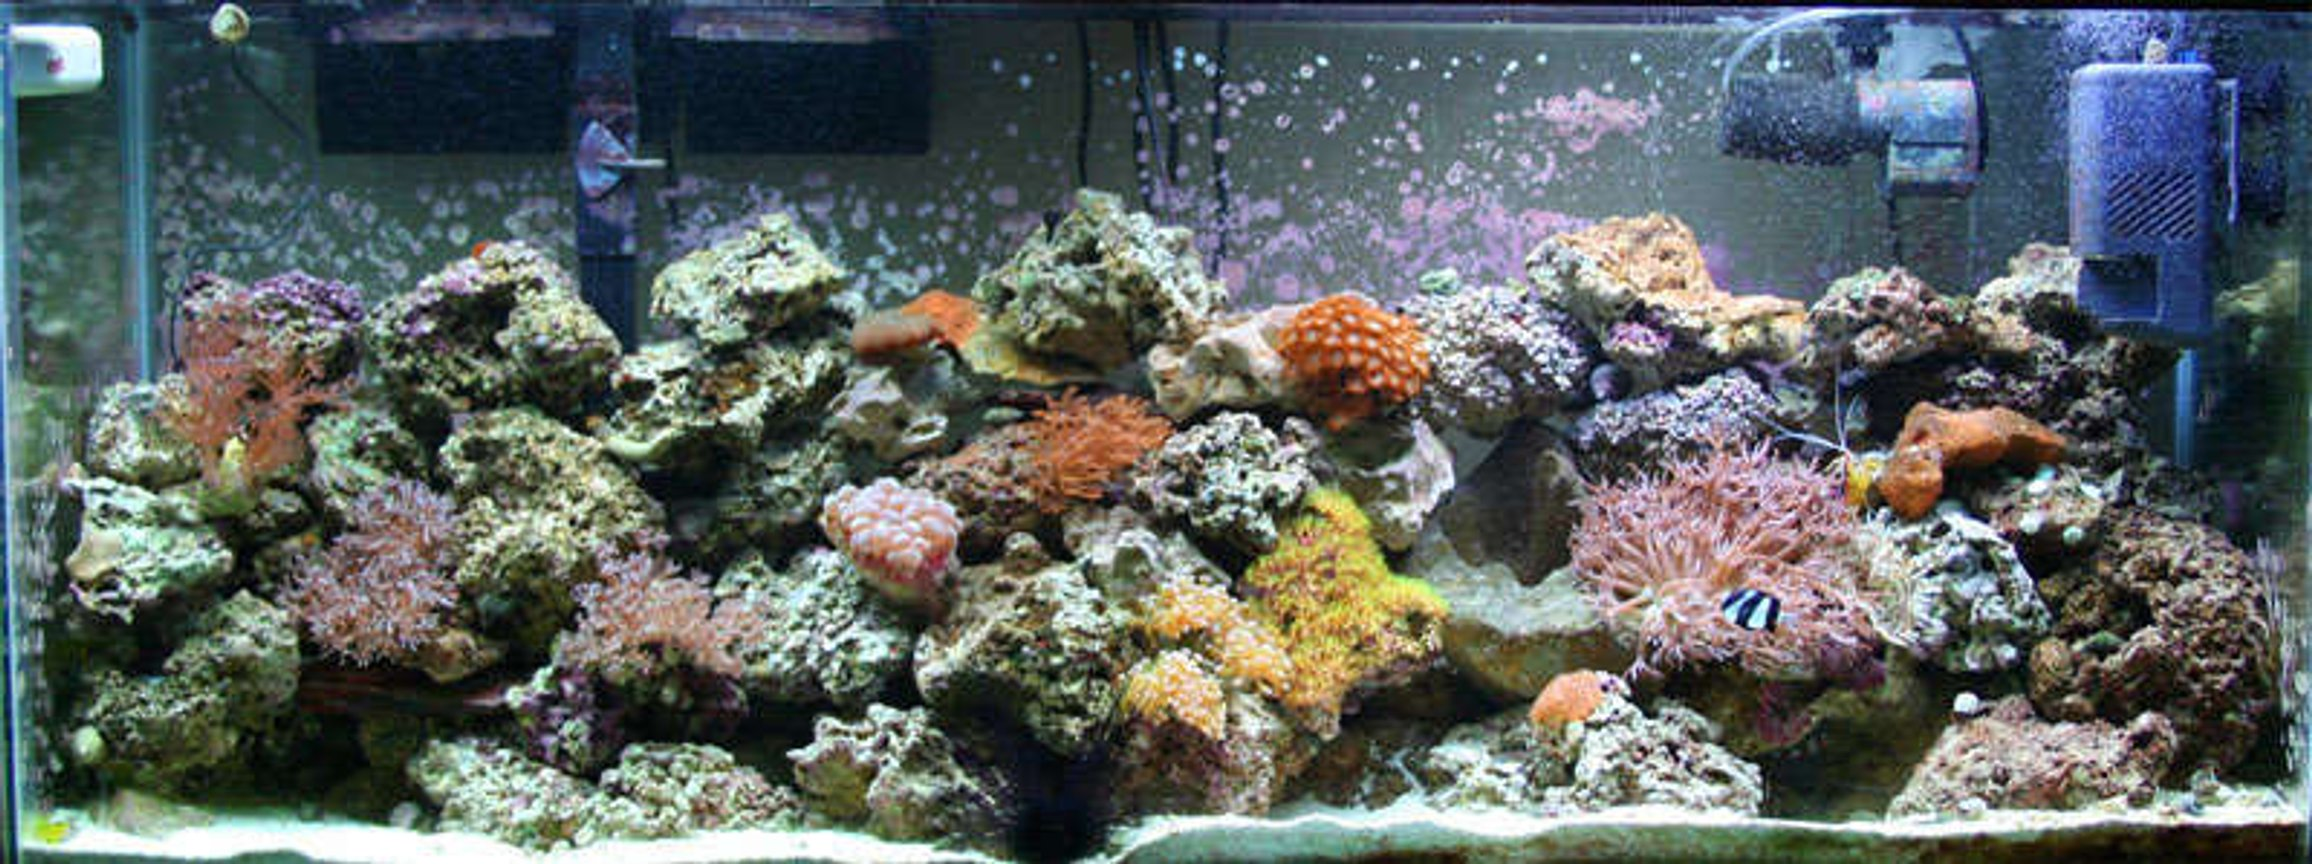 55 gallons reef tank (mostly live coral and fish) - A shot of my 55 gallon